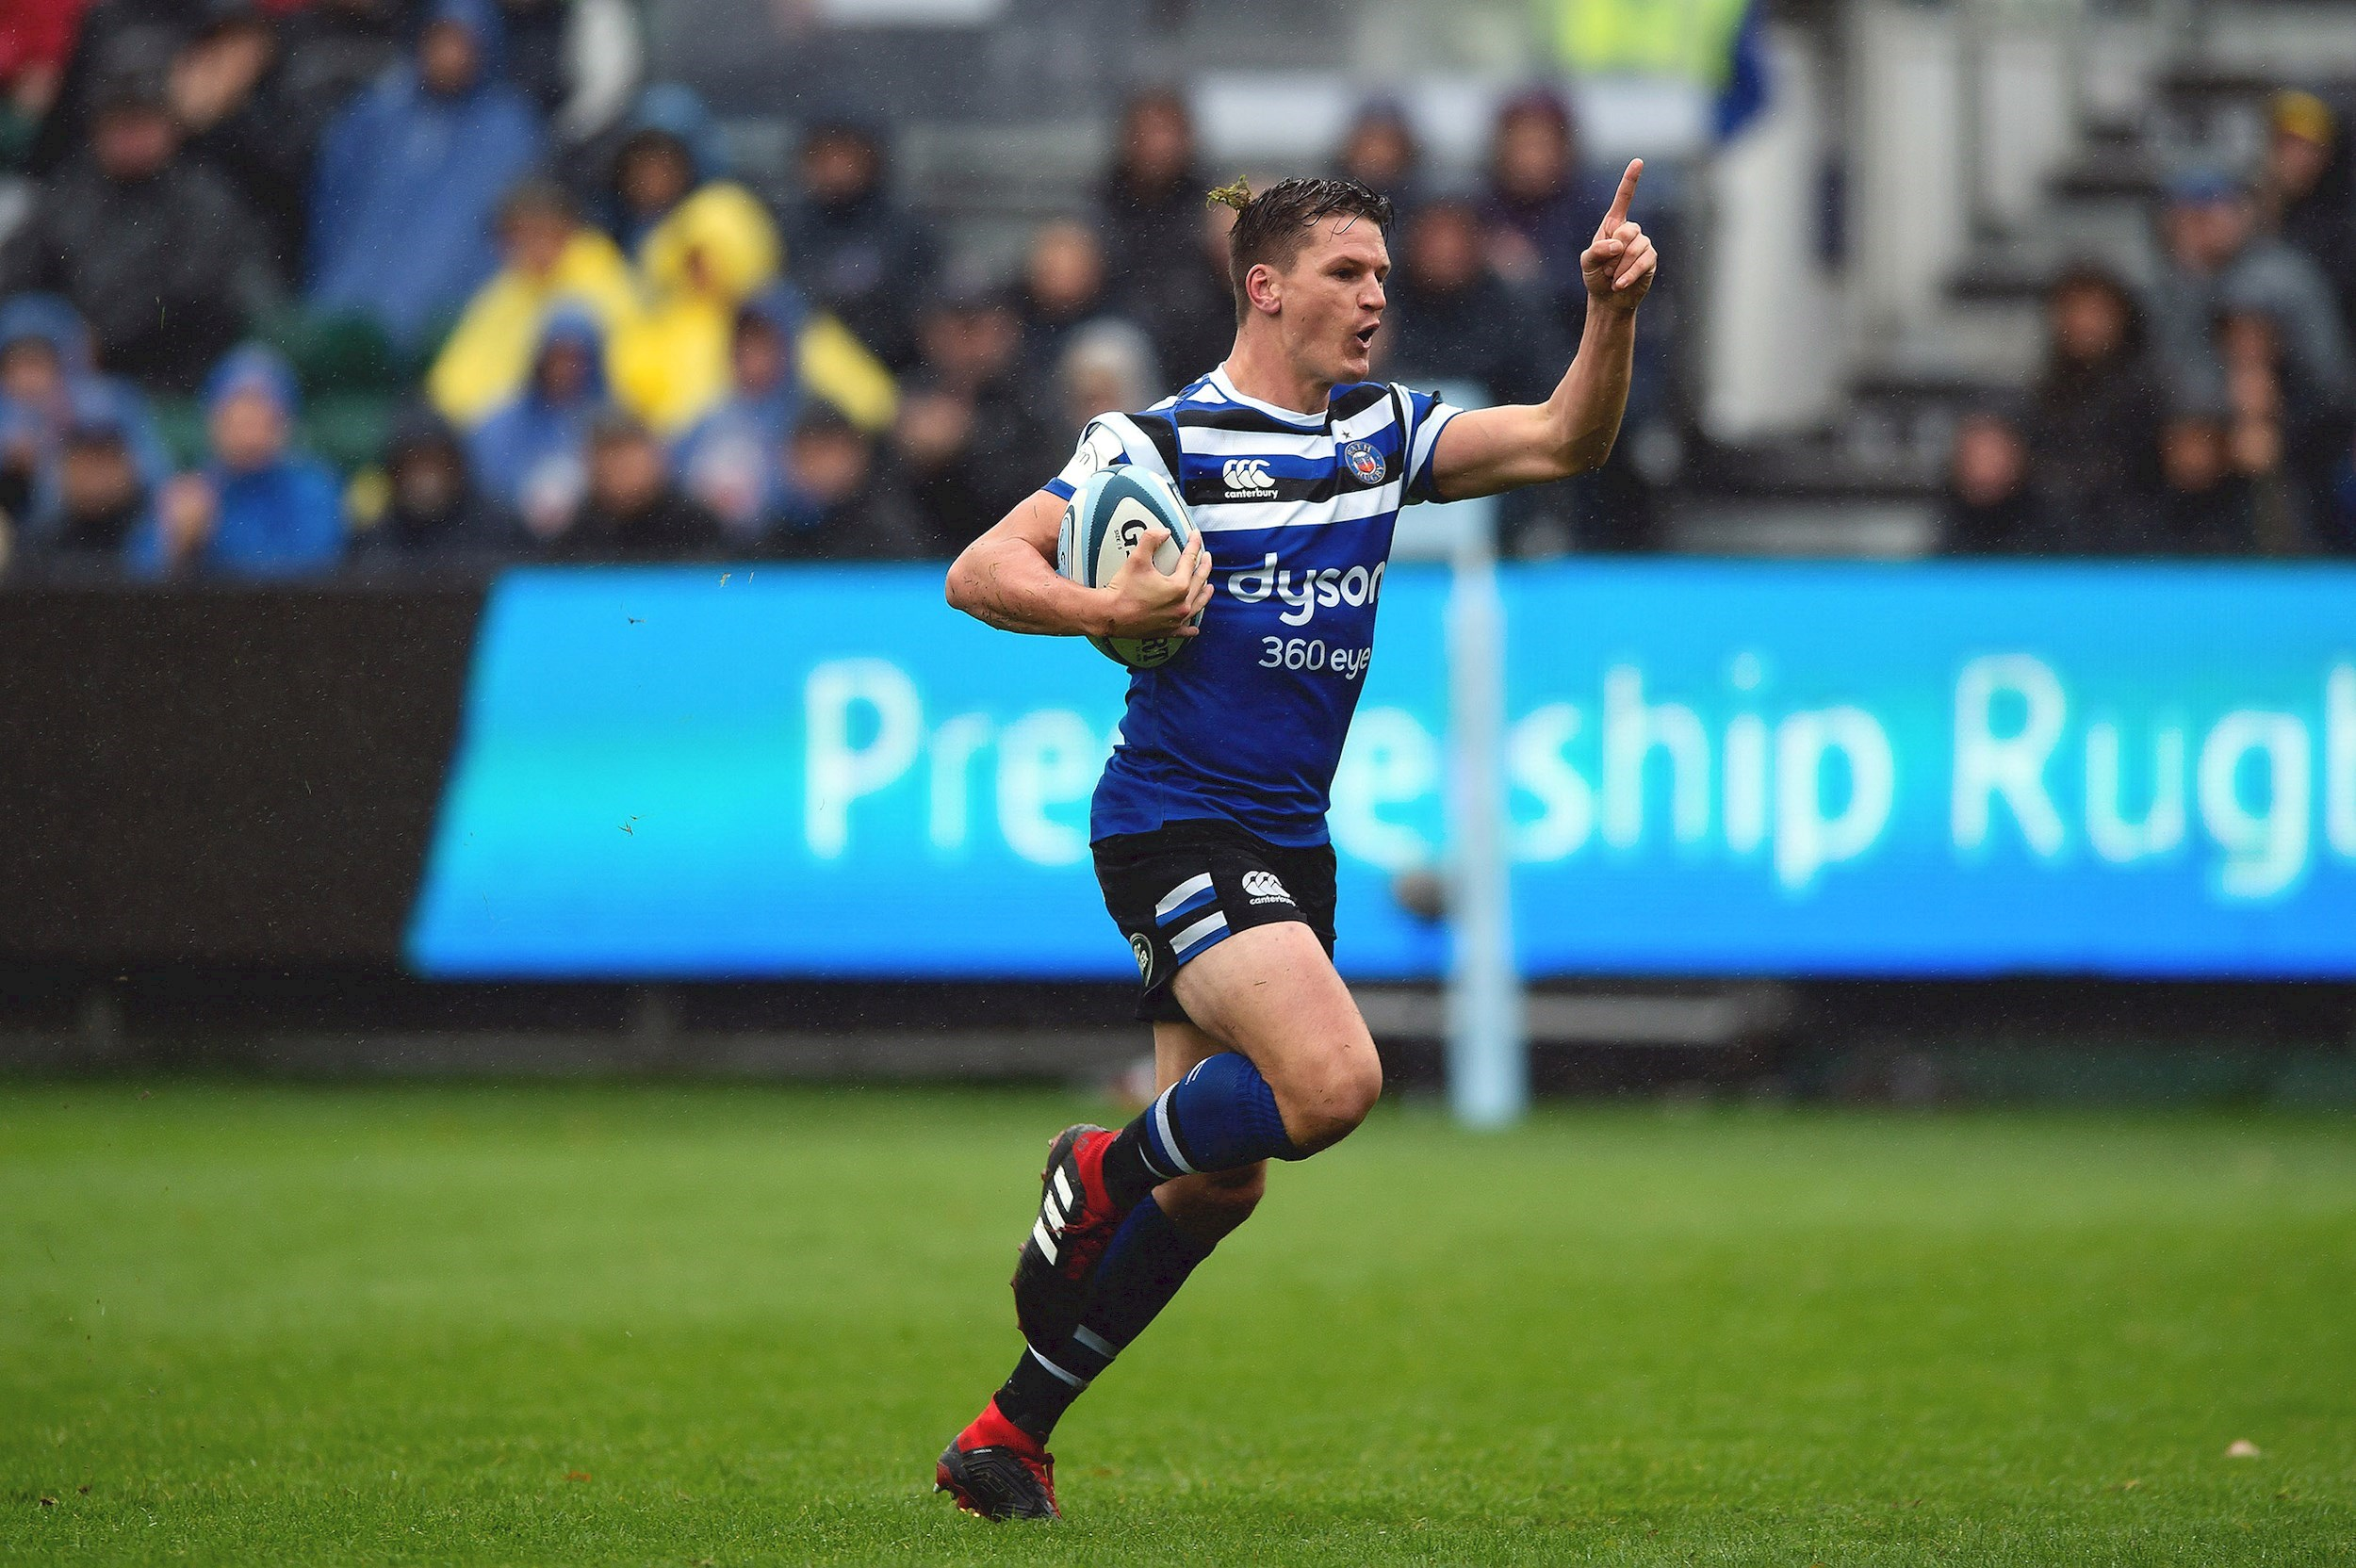 Bath Rugby seal hard-fought victory over Northampton Saints